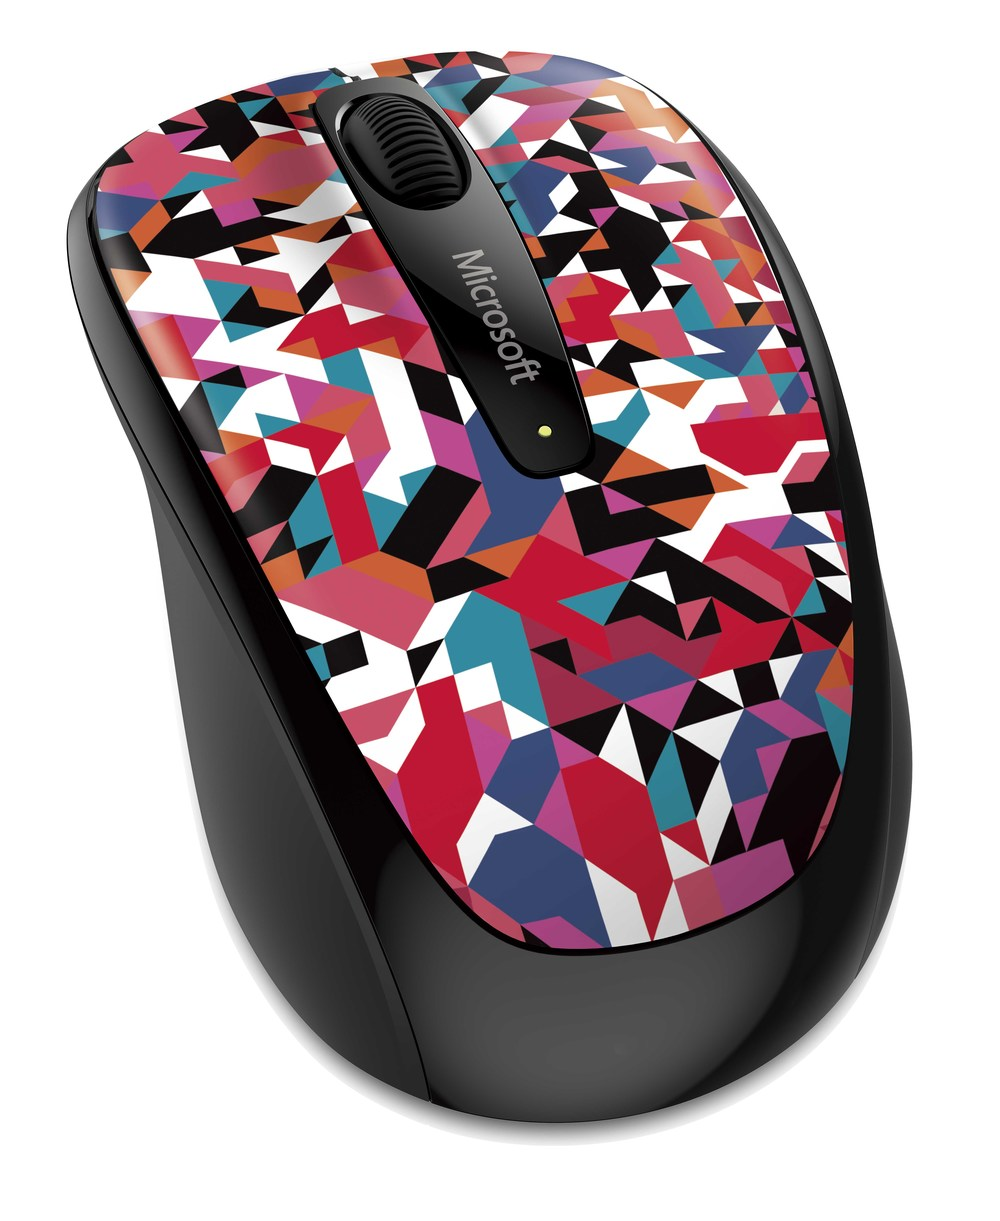 An Art Series mouse. Credit: Microsoft.